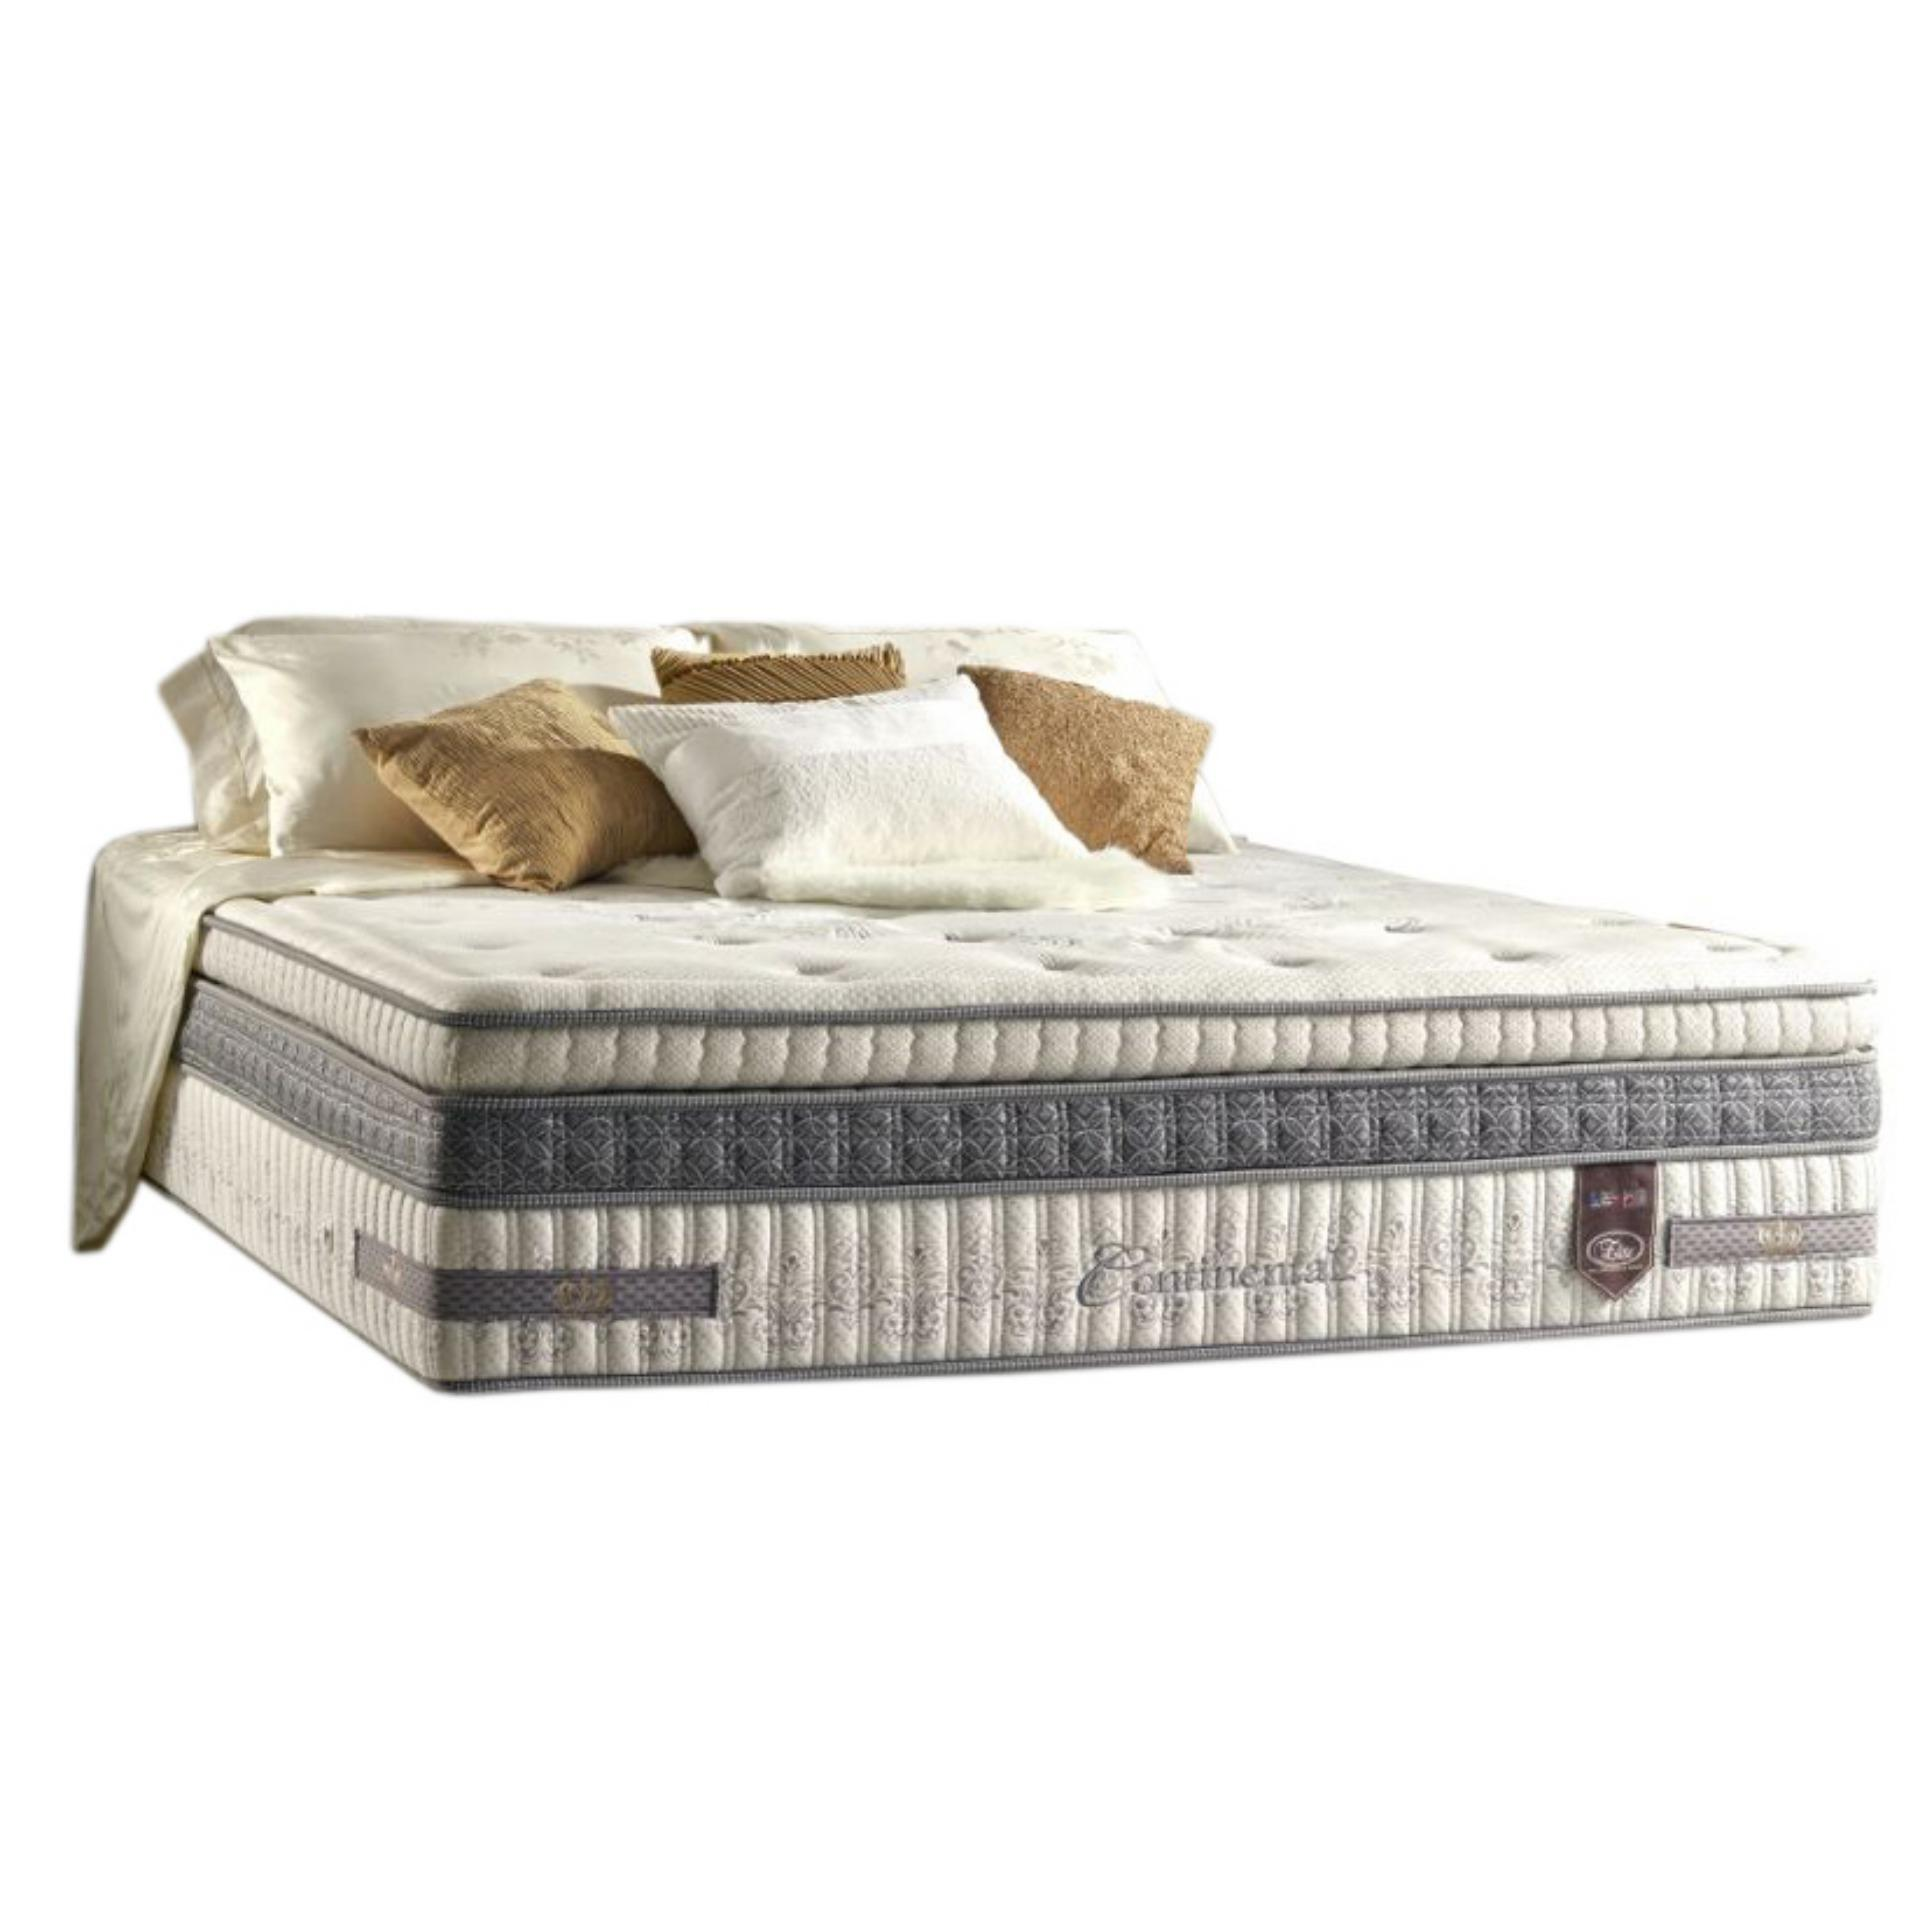 Elite Springbed Continental Luxurious Pocketed On Pocketed Size 180 x 200 - Mattress Only - Khusus Jabodetabek